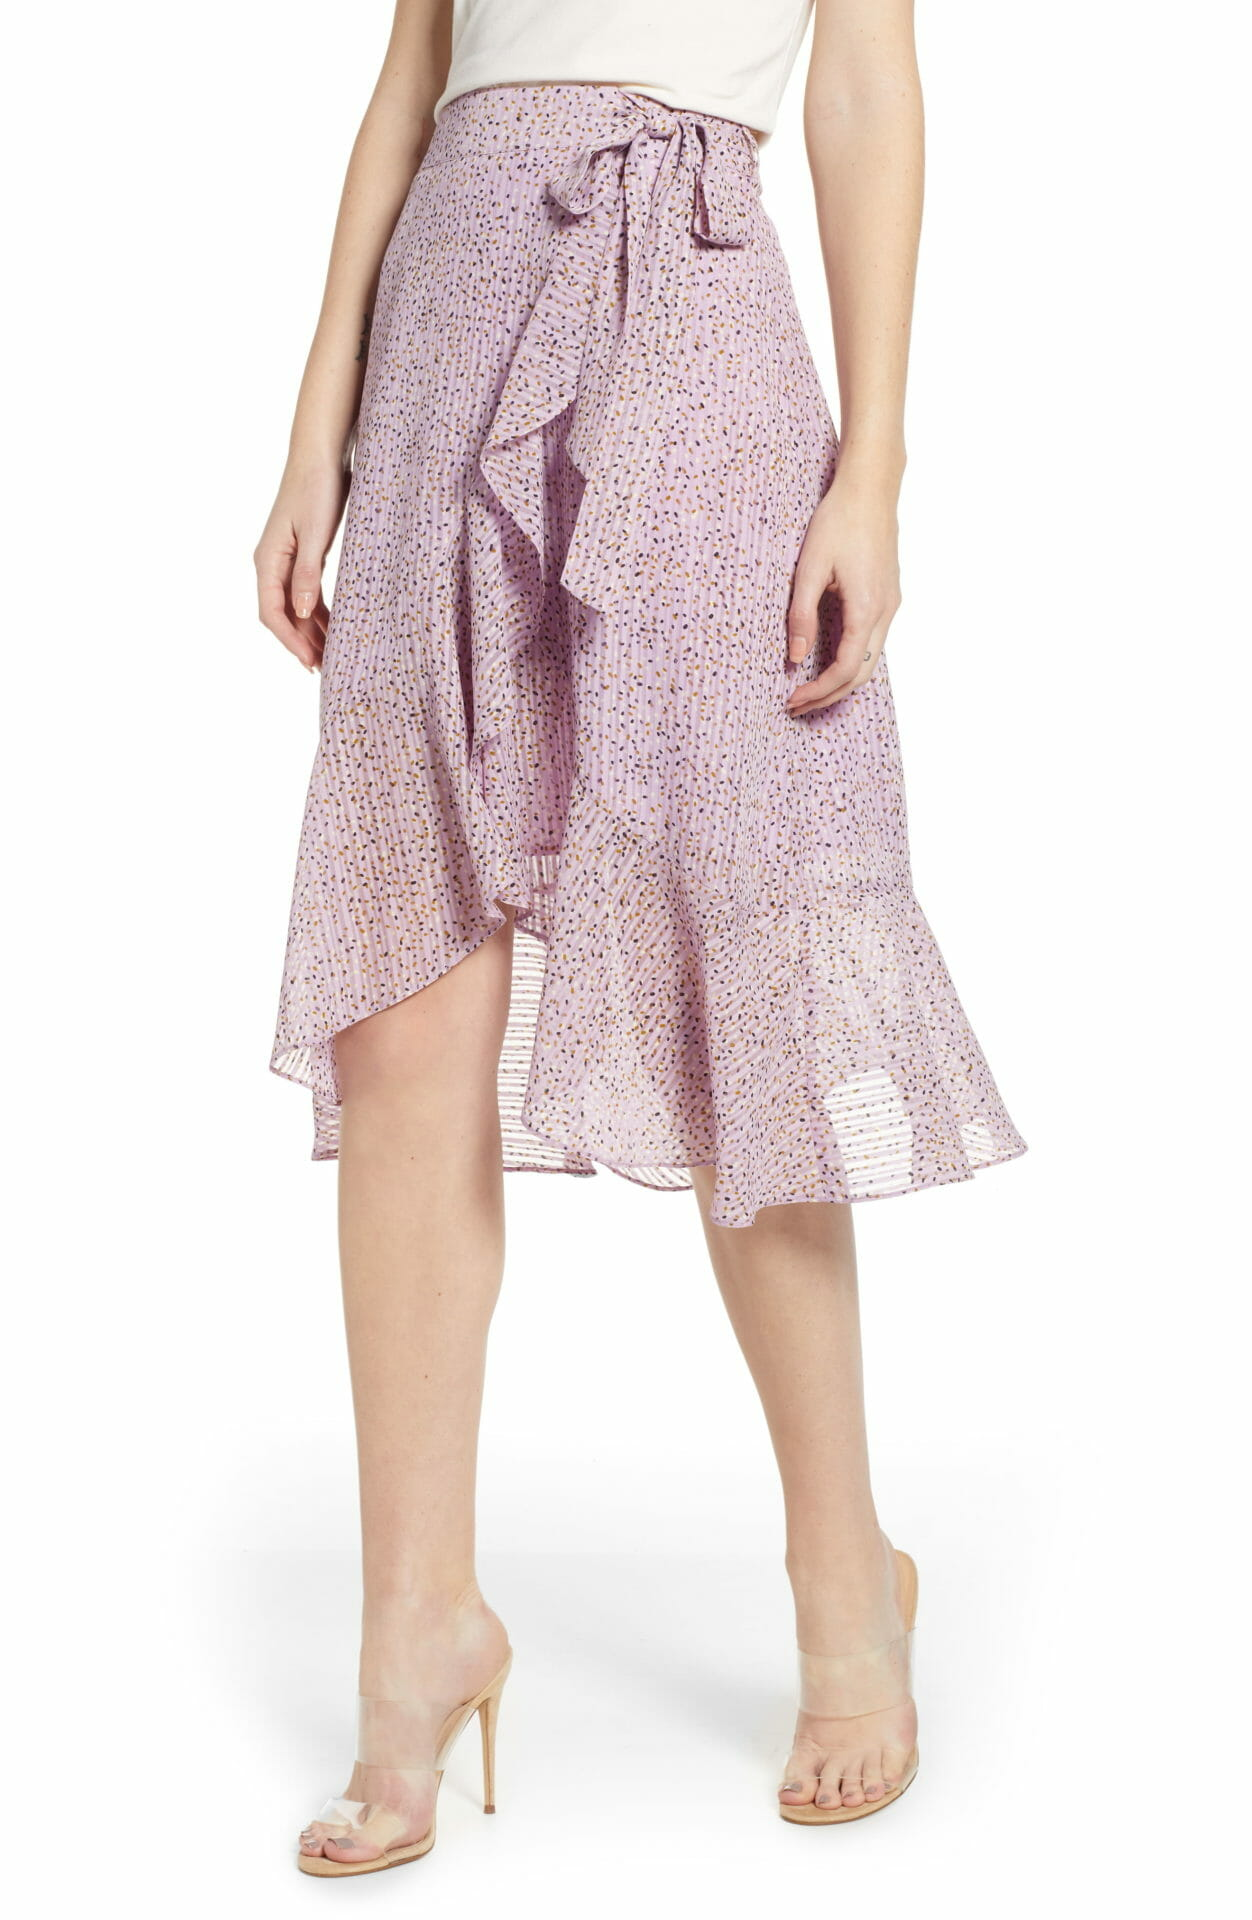 J.O.A. Flounced Wrap Skirt, Main, color, LAVENDER DOT